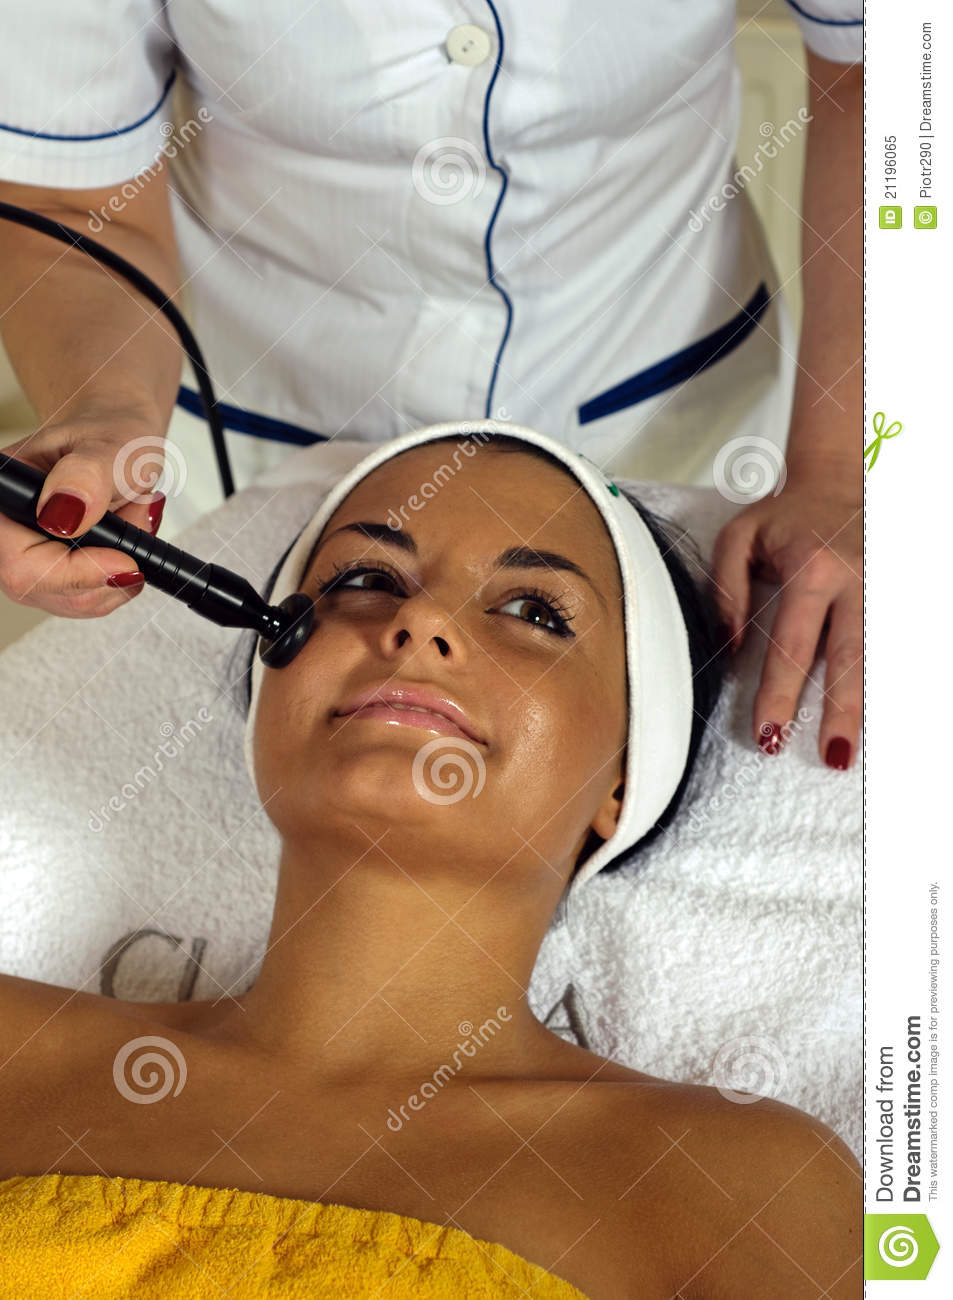 Beautiful young woman getting face massage.